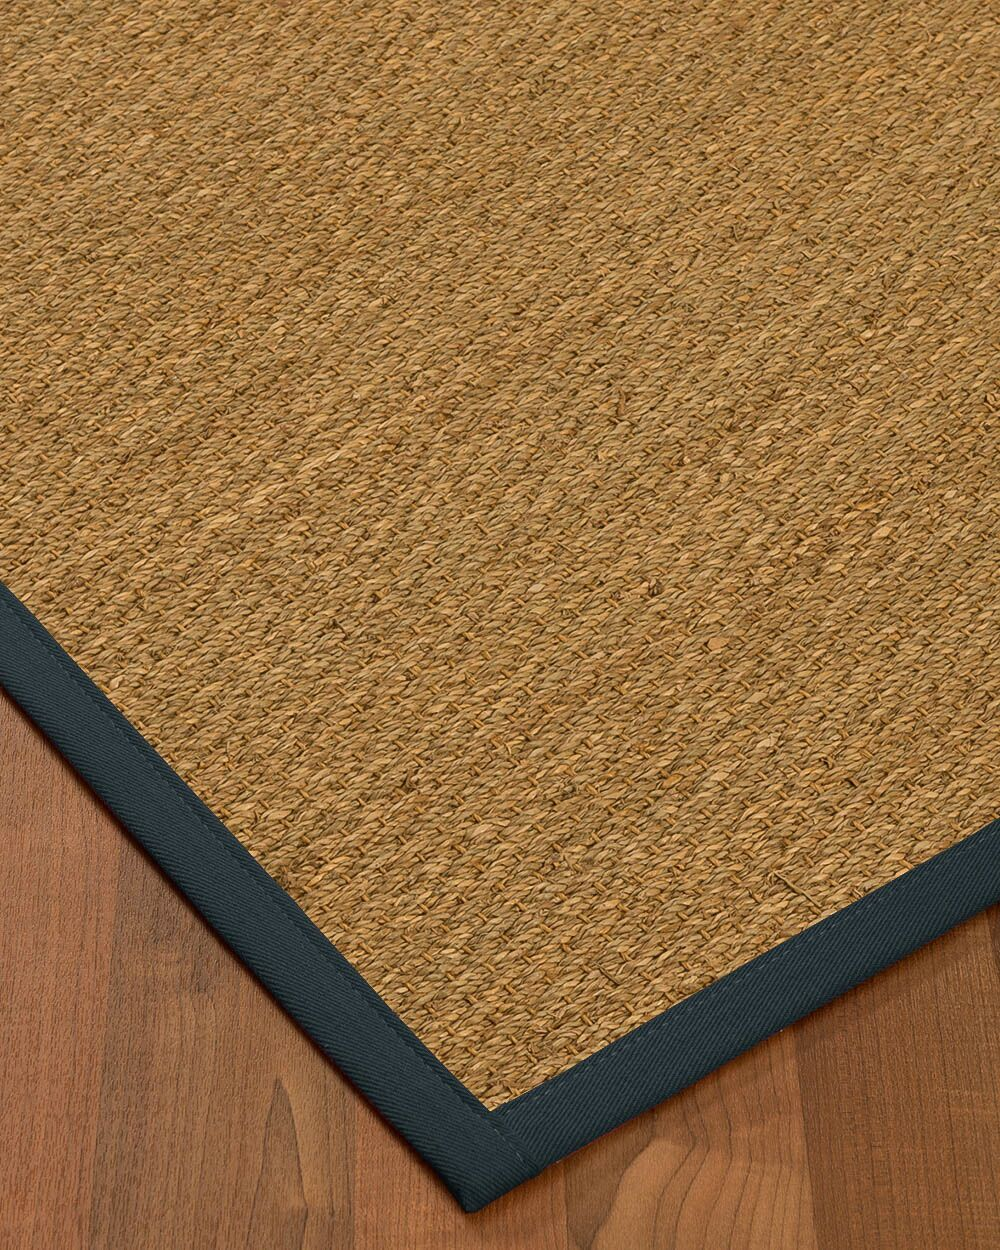 Anya Border Hand-Woven Beige/Marine Area Rug Rug Size: Rectangle 8' x 10', Rug Pad Included: Yes